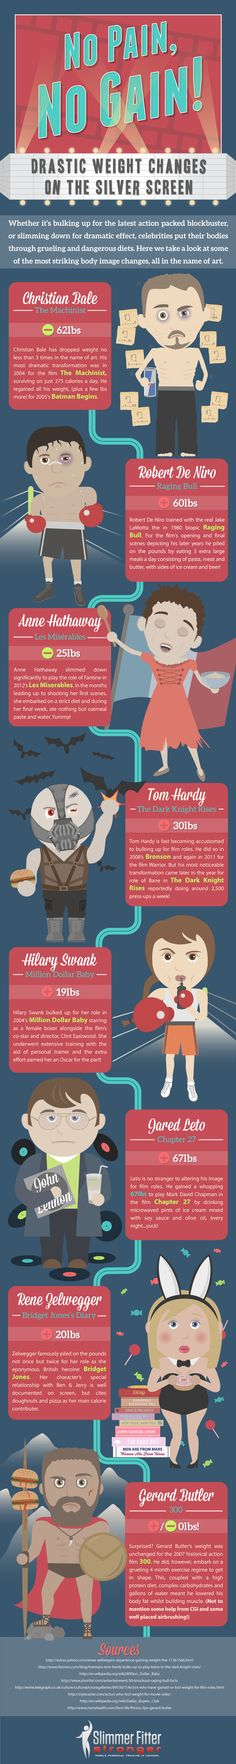 Awesome infographic from Slimmer Fitter Stronger about how Hollywood stars have slimmed down or packed on the pounds to play memorable roles. Just in time for the Oscars!